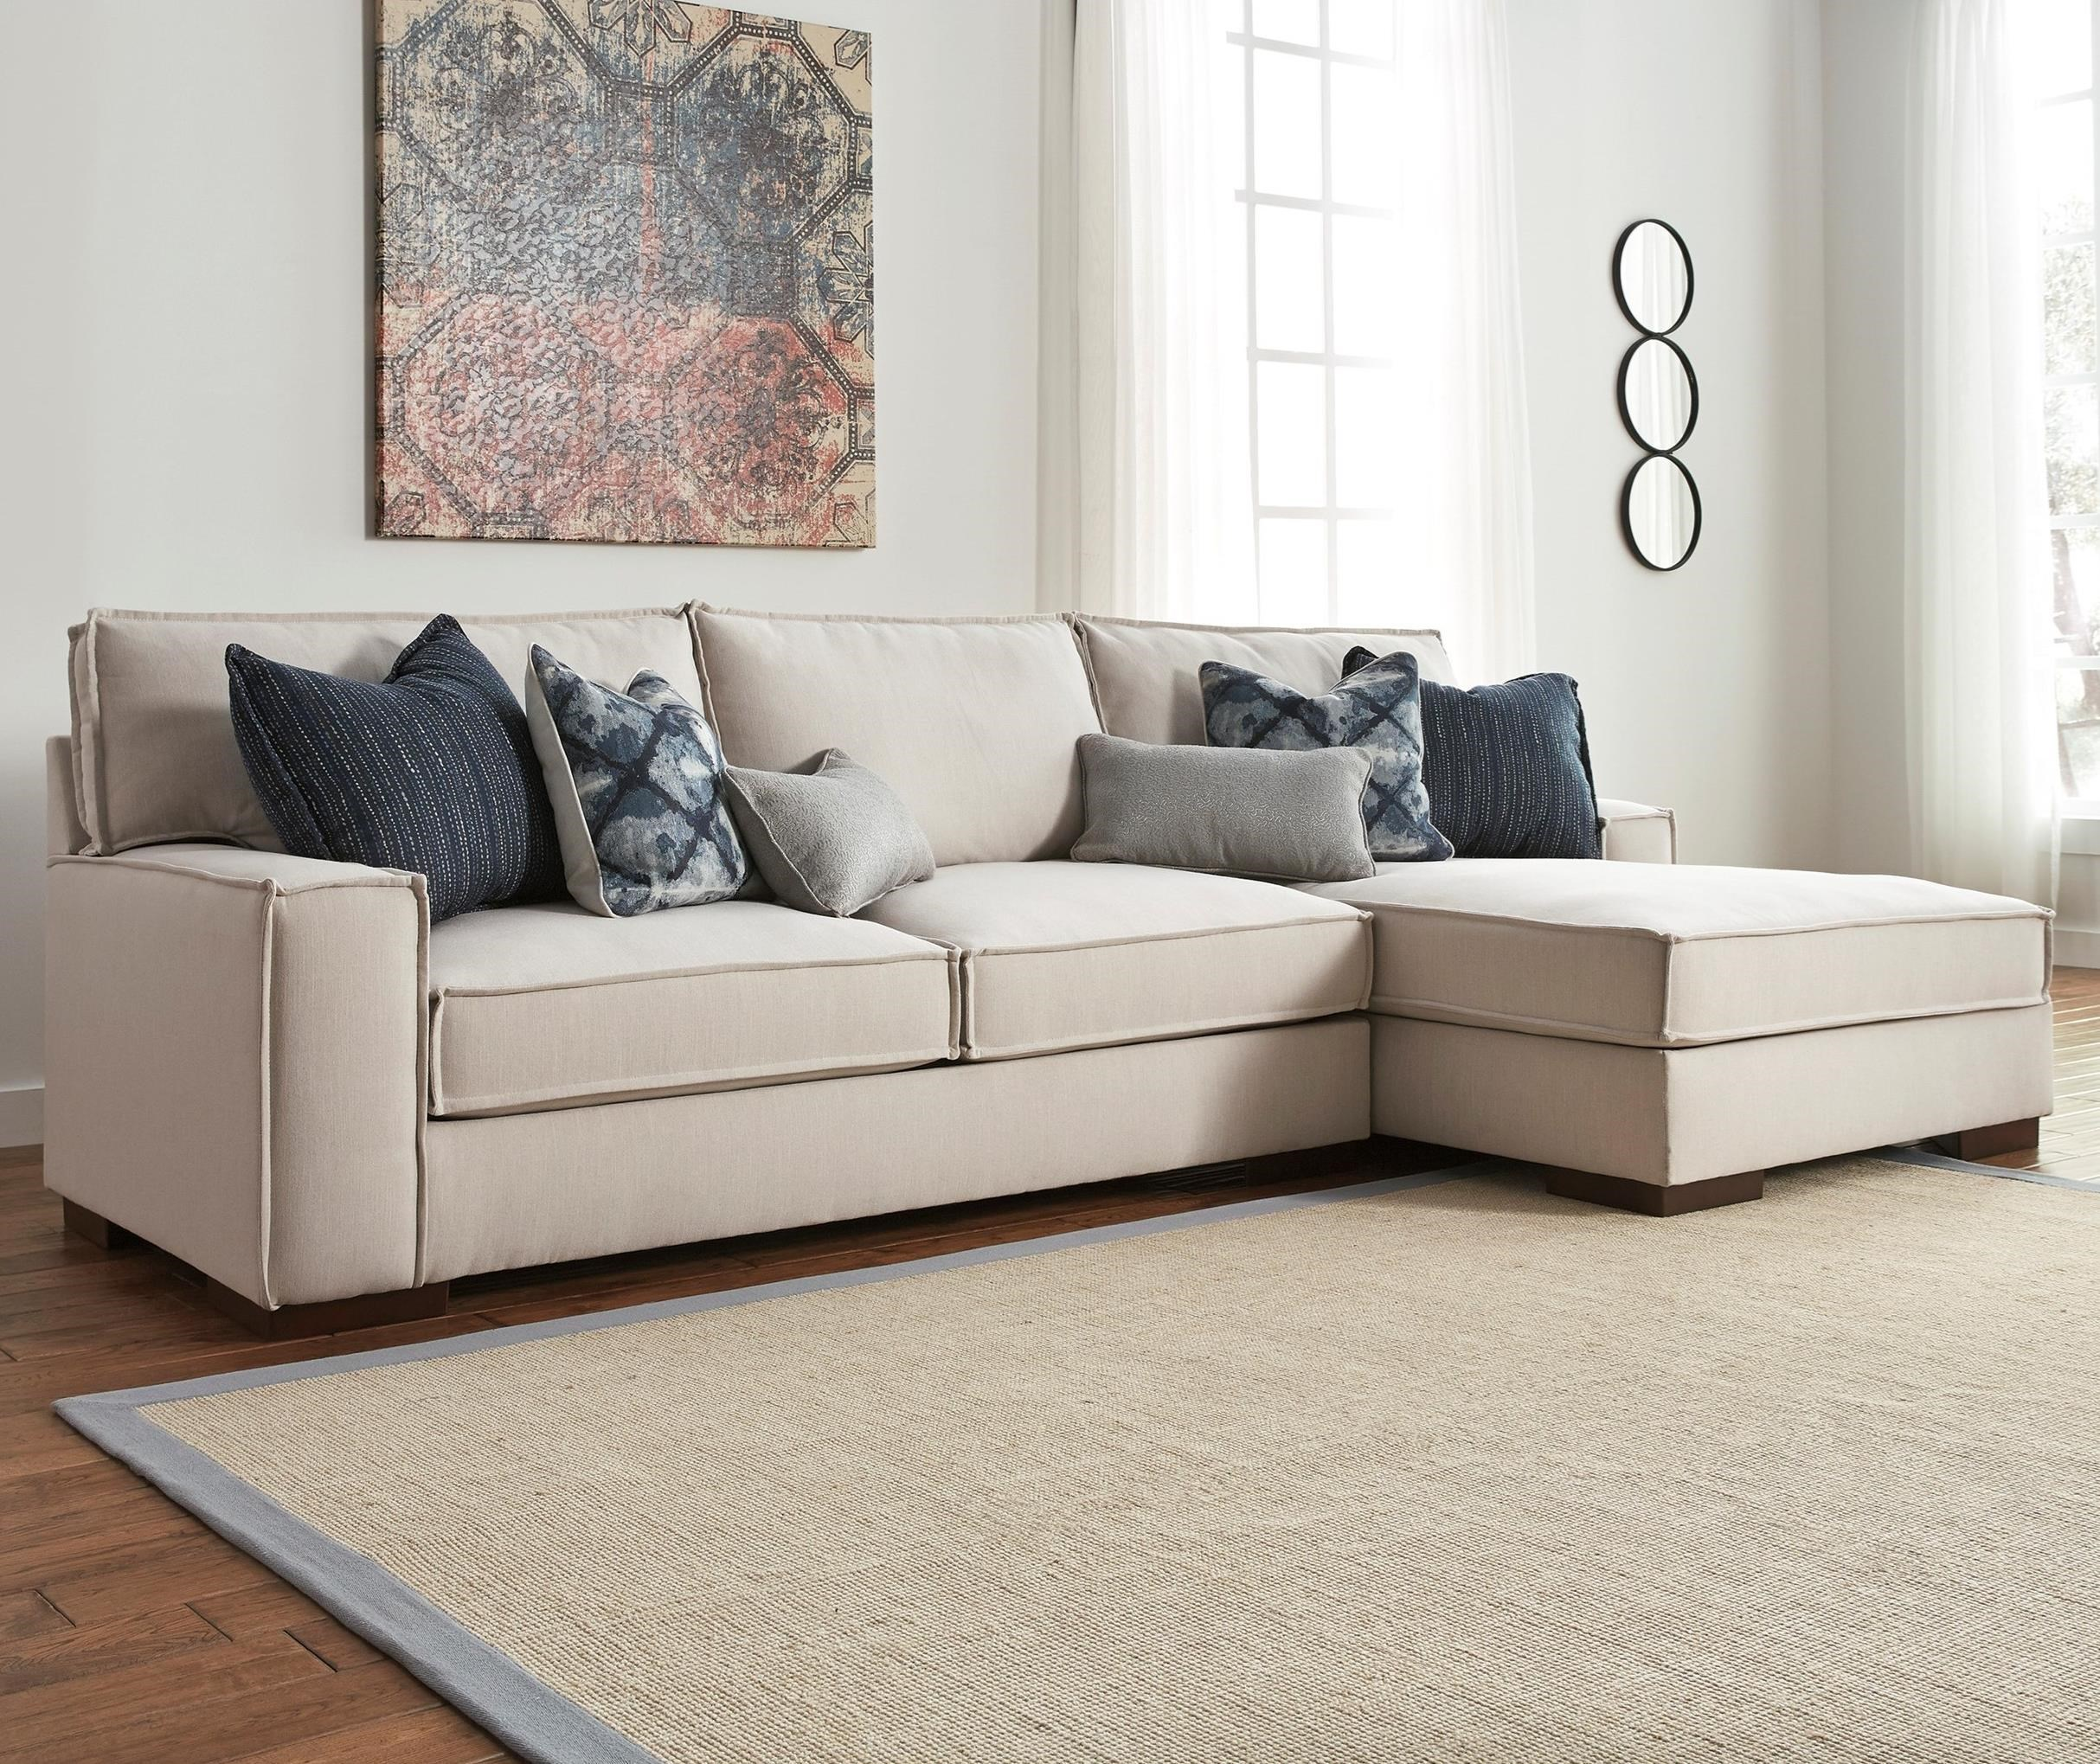 Benchcraft By Ashley Kendleton Modern 2 Piece Sectional With Right Chaise  And UltraPlush Seat Cushions